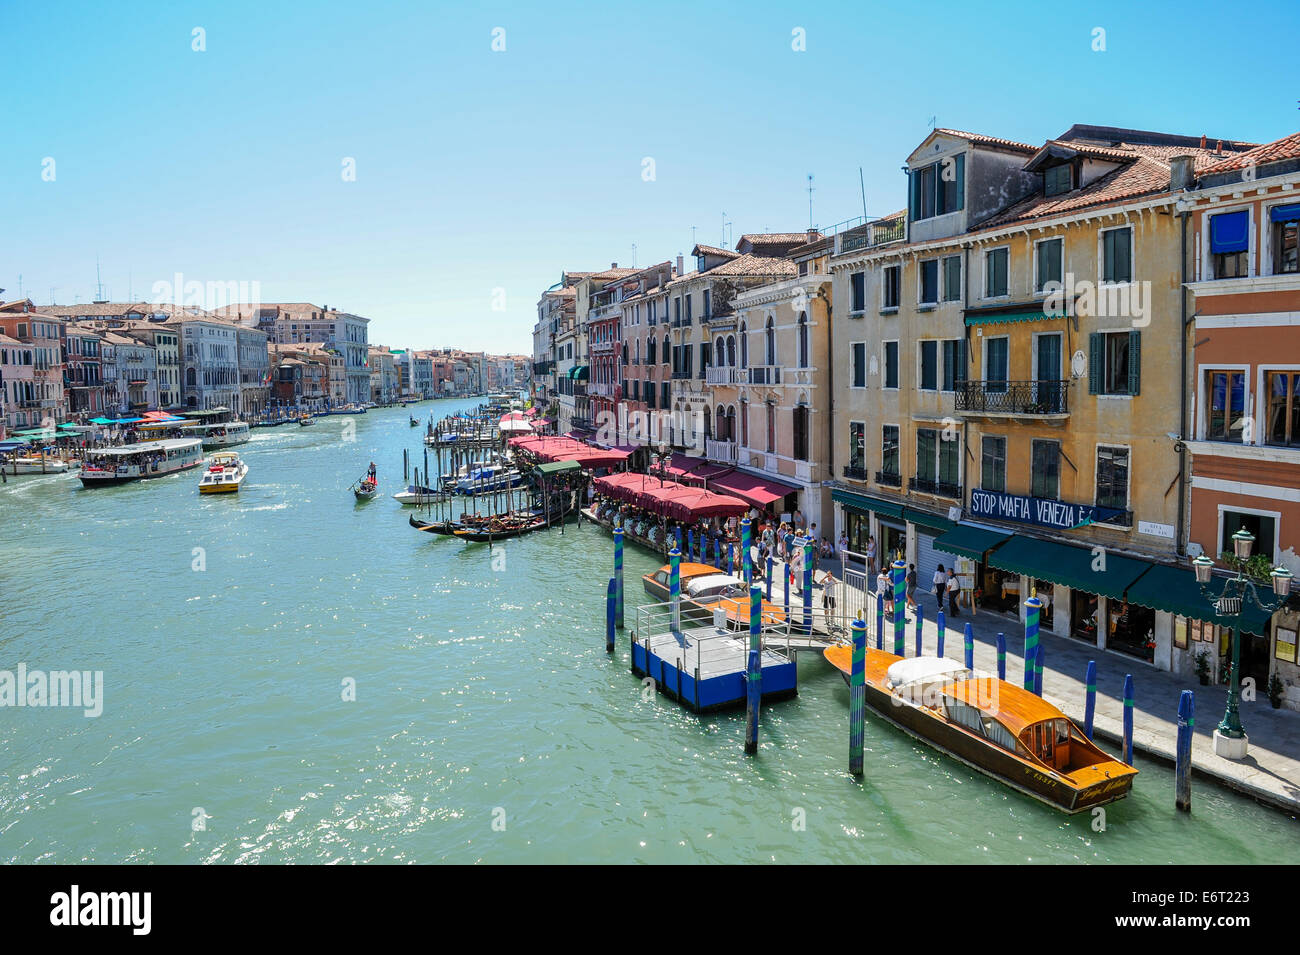 Boats, gondolas and tourists along the grand canal and a sign, stop the Mafia in Venice. - Stock Image